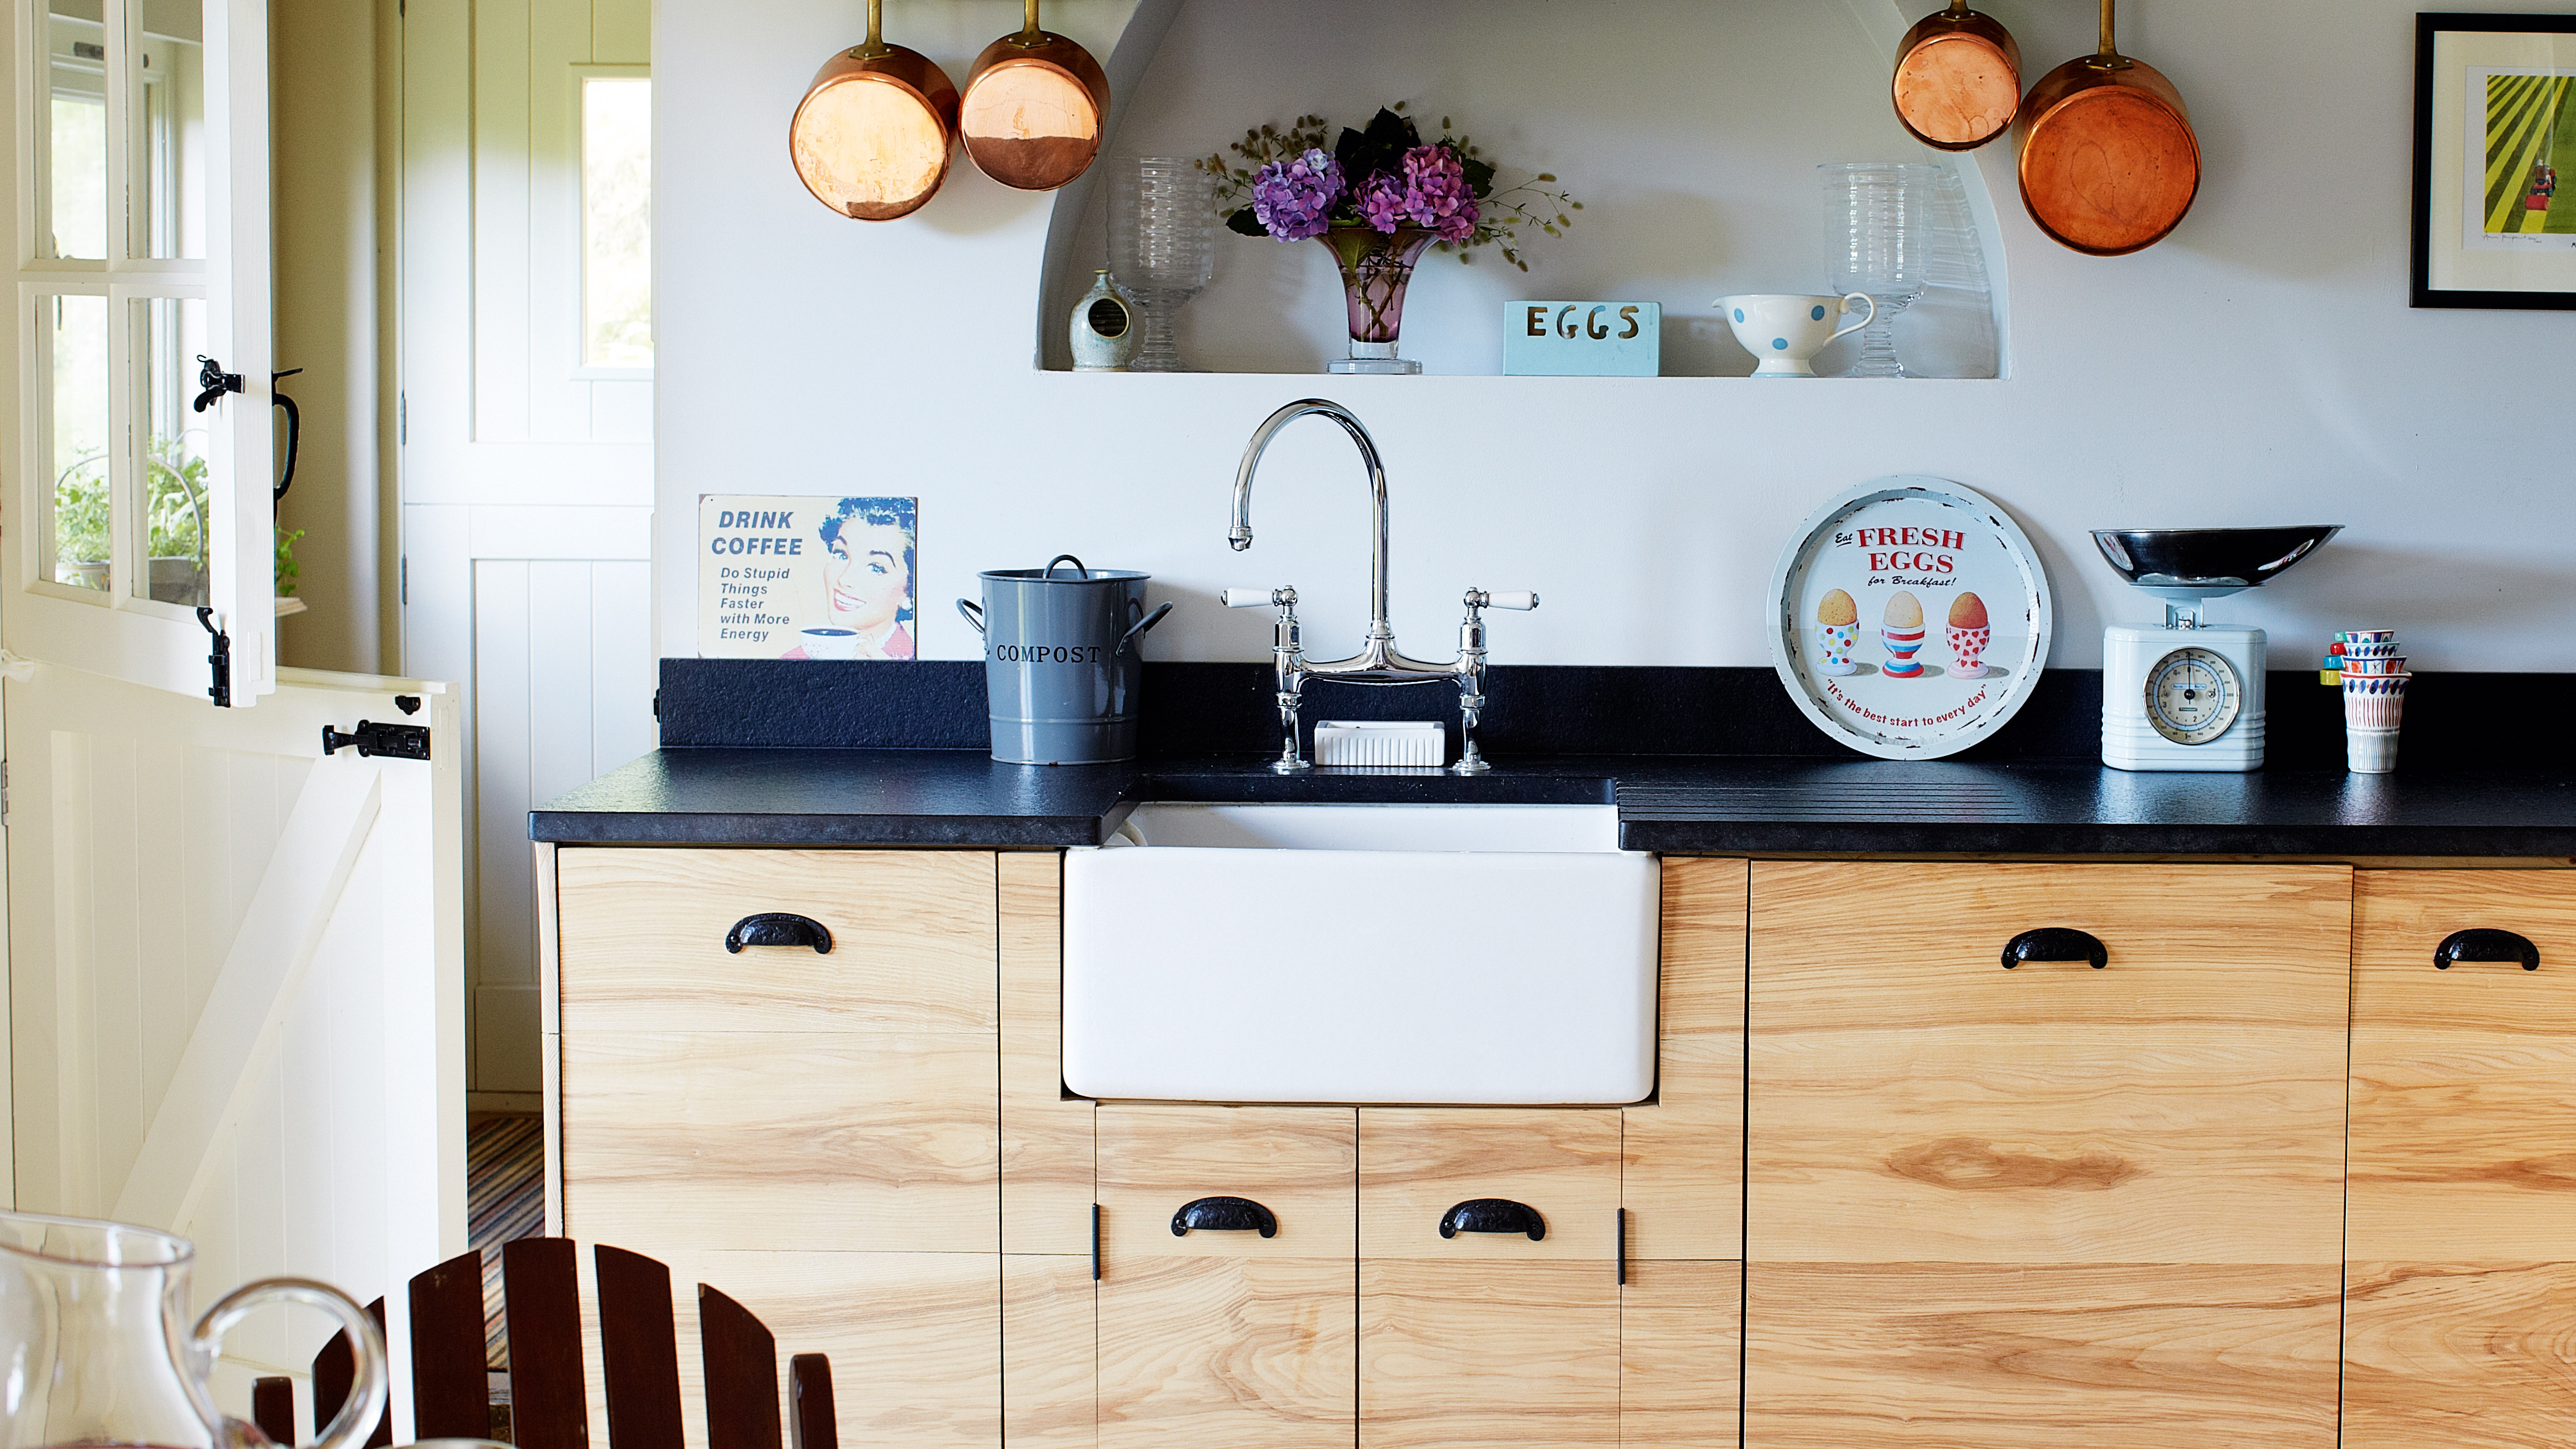 22c254f722e25 Designing a country kitchen: advice and ideas | Real Homes